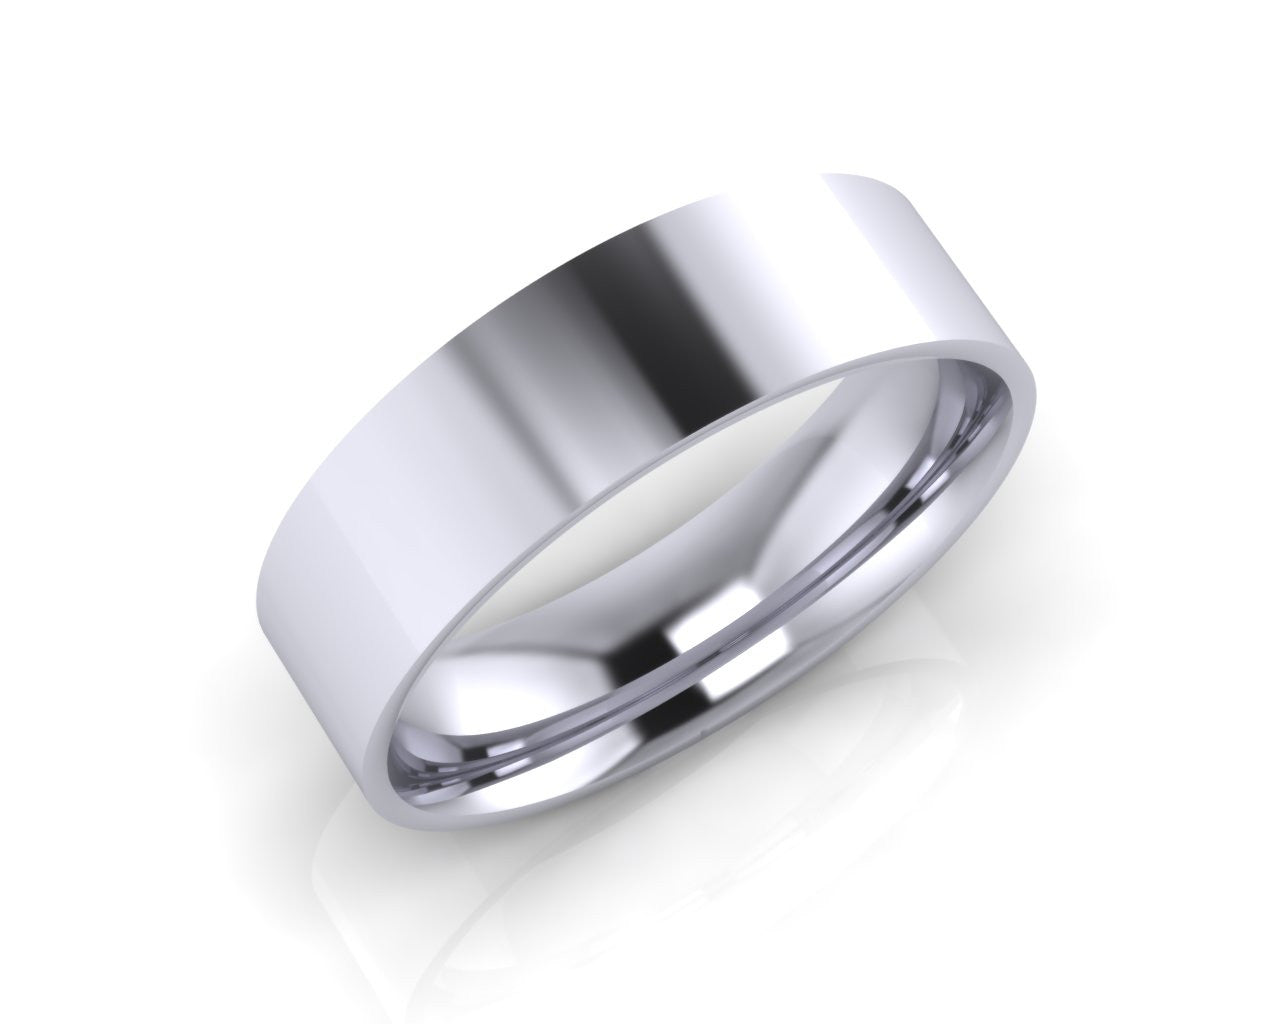 Platinum Mini Demi-Ellipse Wedding Ring 6.0mm Size T - all ring sizes available - Andrew Scott